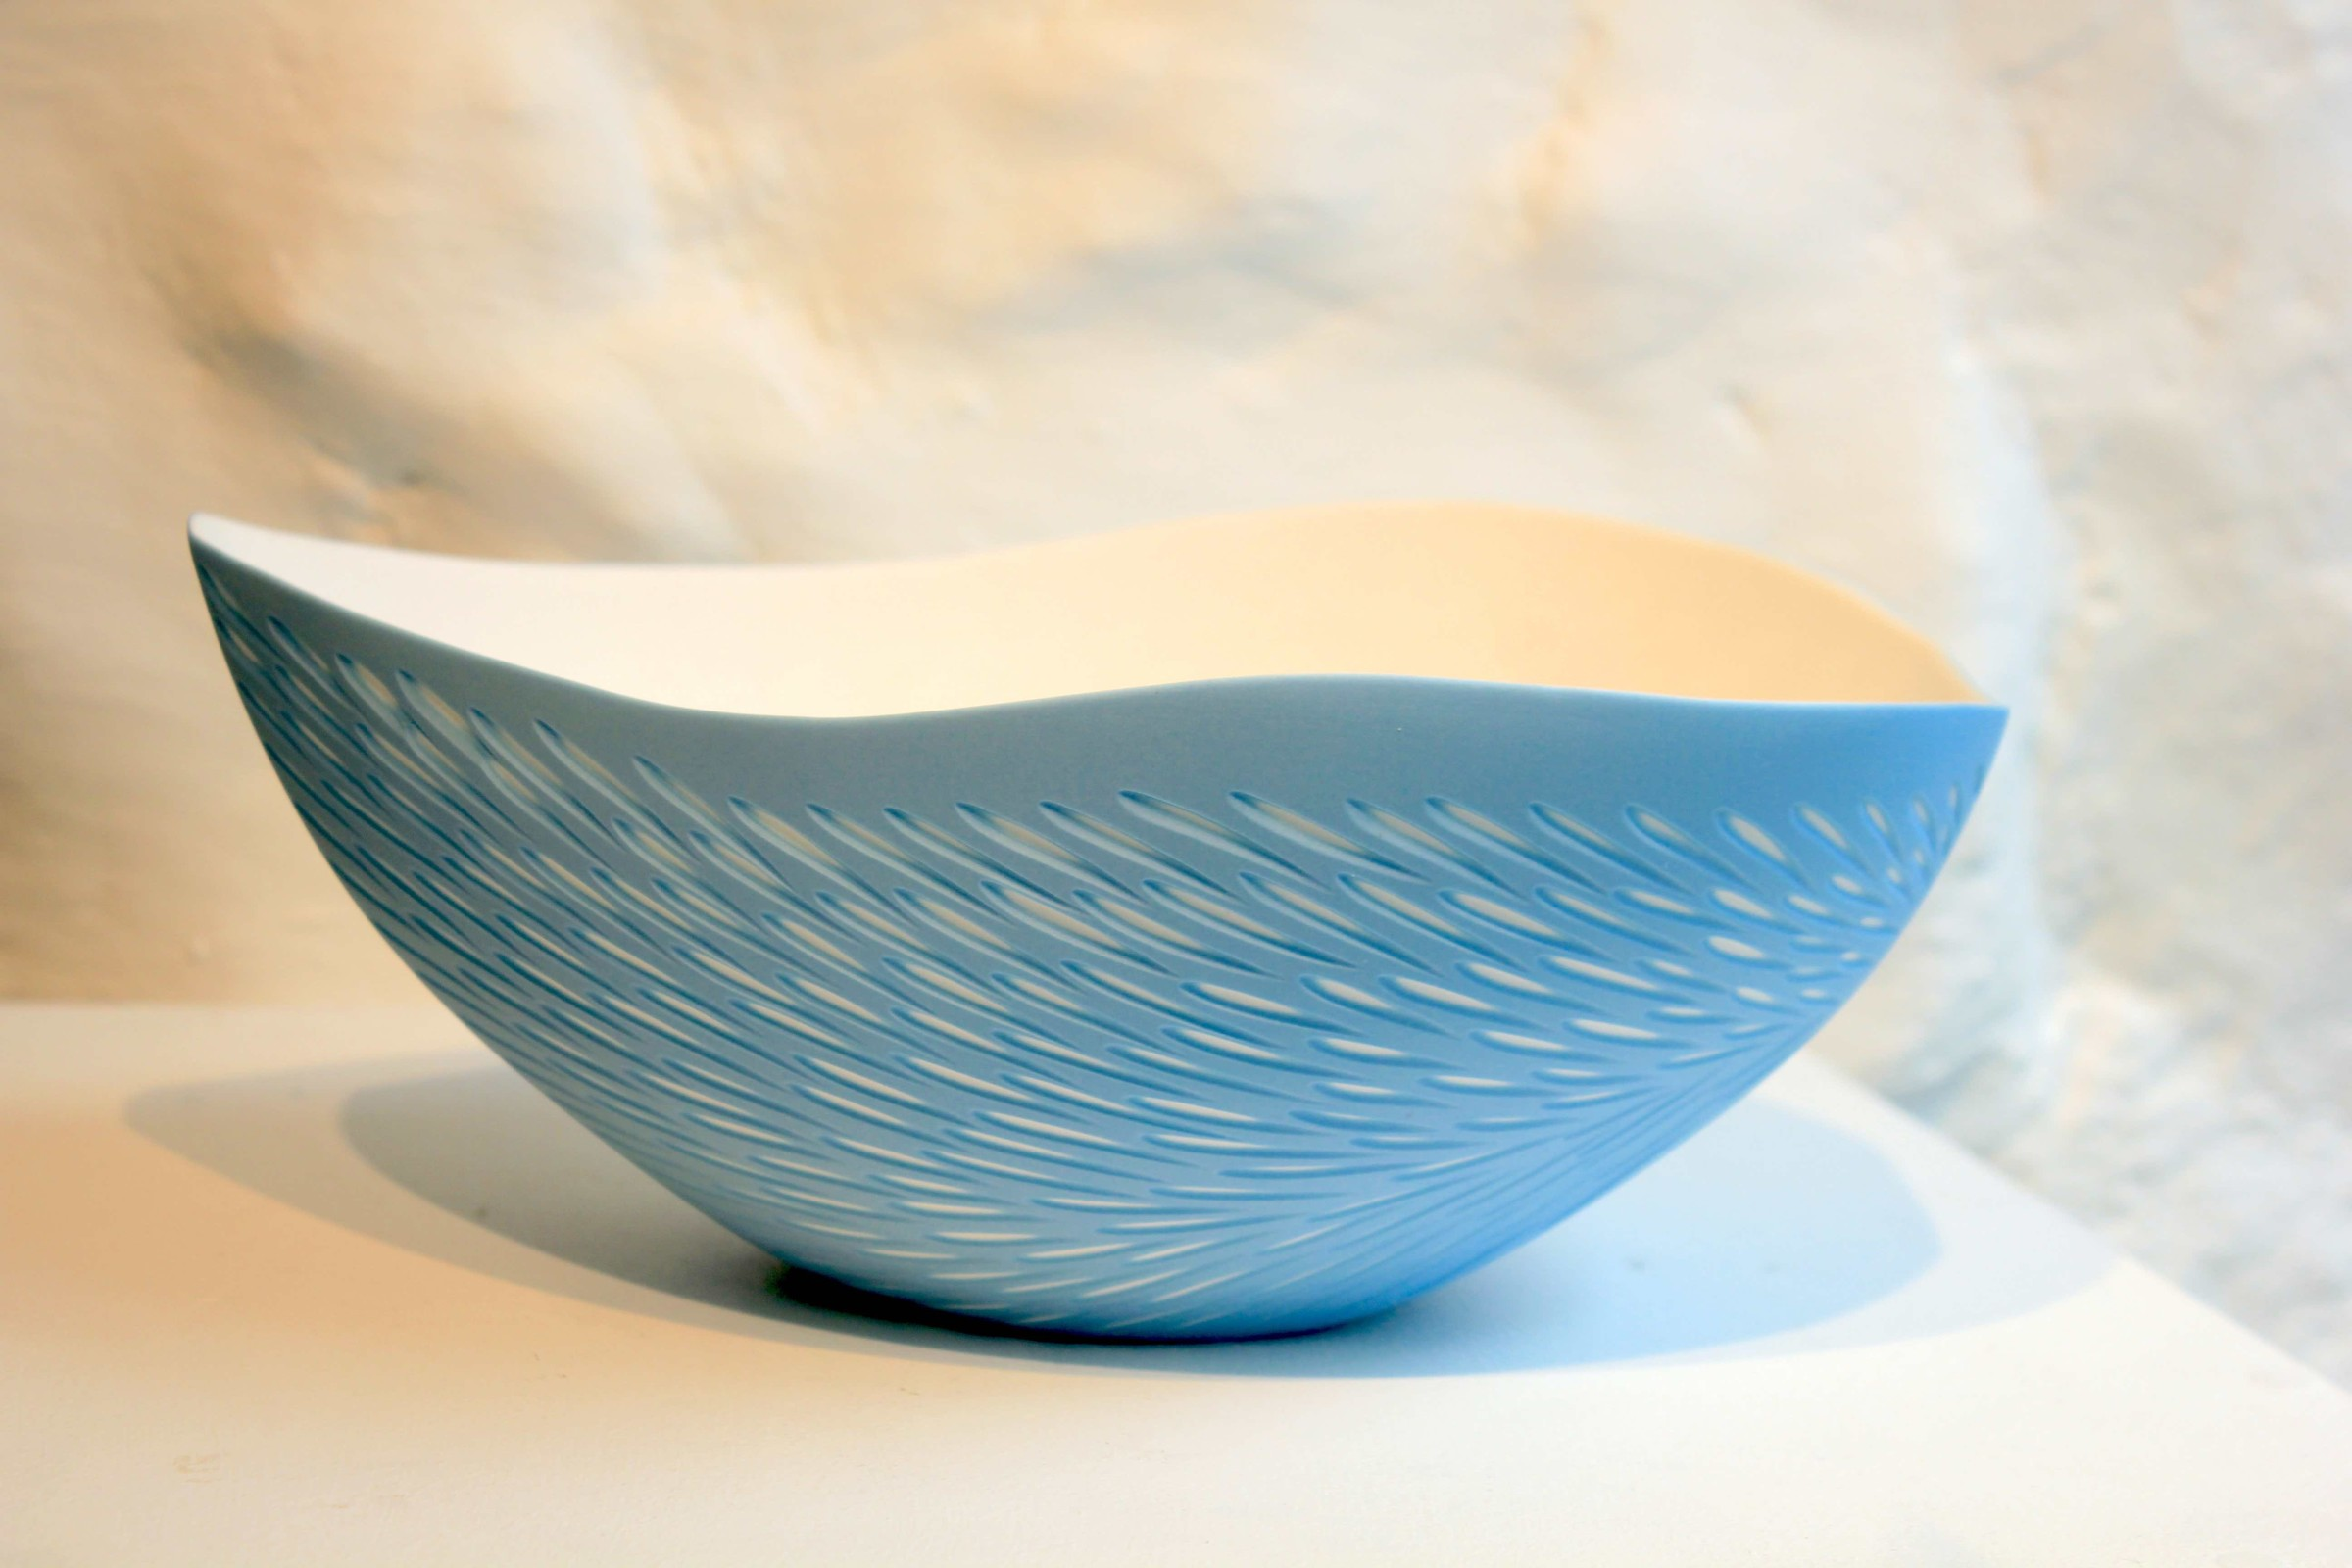 "<span class=""link fancybox-details-link""><a href=""/artists/60-sasha-wardell/works/5499-sasha-wardell-shoal-bowl-2018/"">View Detail Page</a></span><div class=""artist""><strong>Sasha Wardell</strong></div> <div class=""title""><em>Shoal Bowl</em>, 2018</div> <div class=""signed_and_dated"">inscribed with artist initials on base</div> <div class=""medium""> layered & sliced bone china</div> <div class=""dimensions"">11 x 26 cm<br /> 4 3/8 x 10 1/4 inches</div><div class=""copyright_line"">OwnArt: £ 29 x 10 Months, 0% APR</div>"